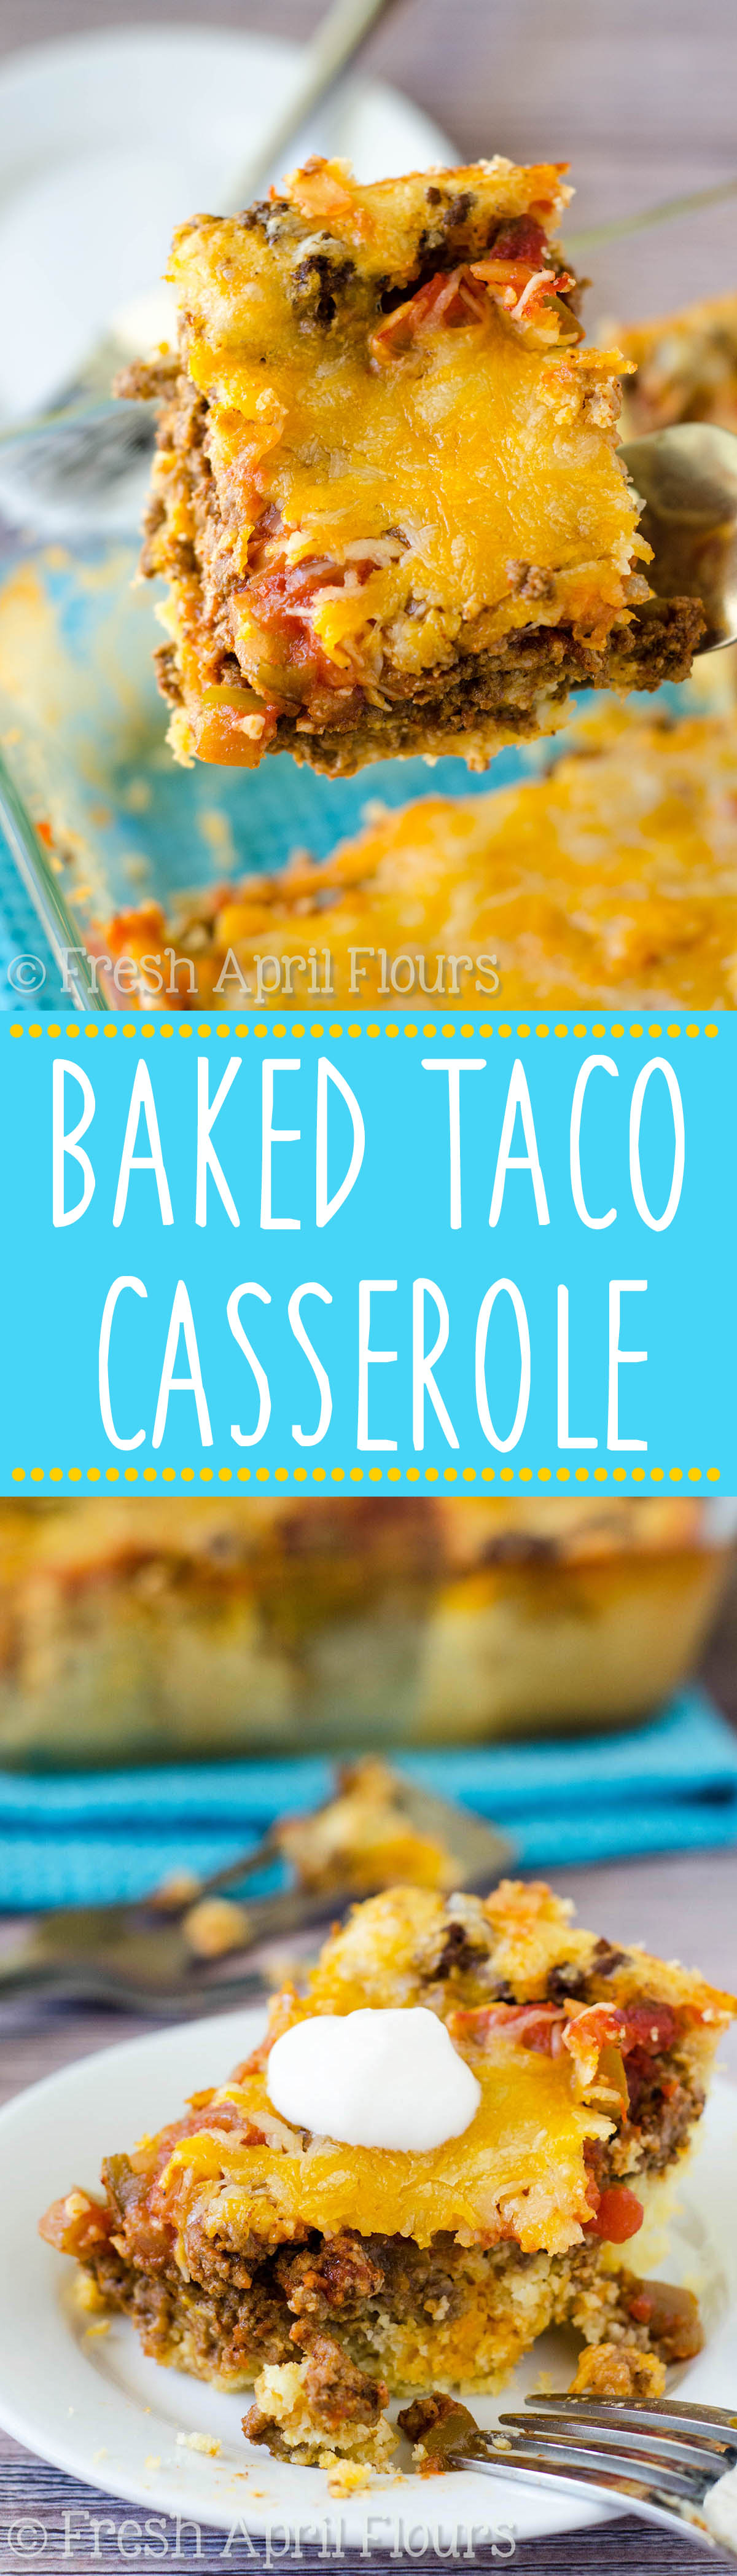 An easy casserole layered with quick cornbread, seasoned meat, salsa, and cheese. Perfect for a quick weeknight meal and makes great leftovers!